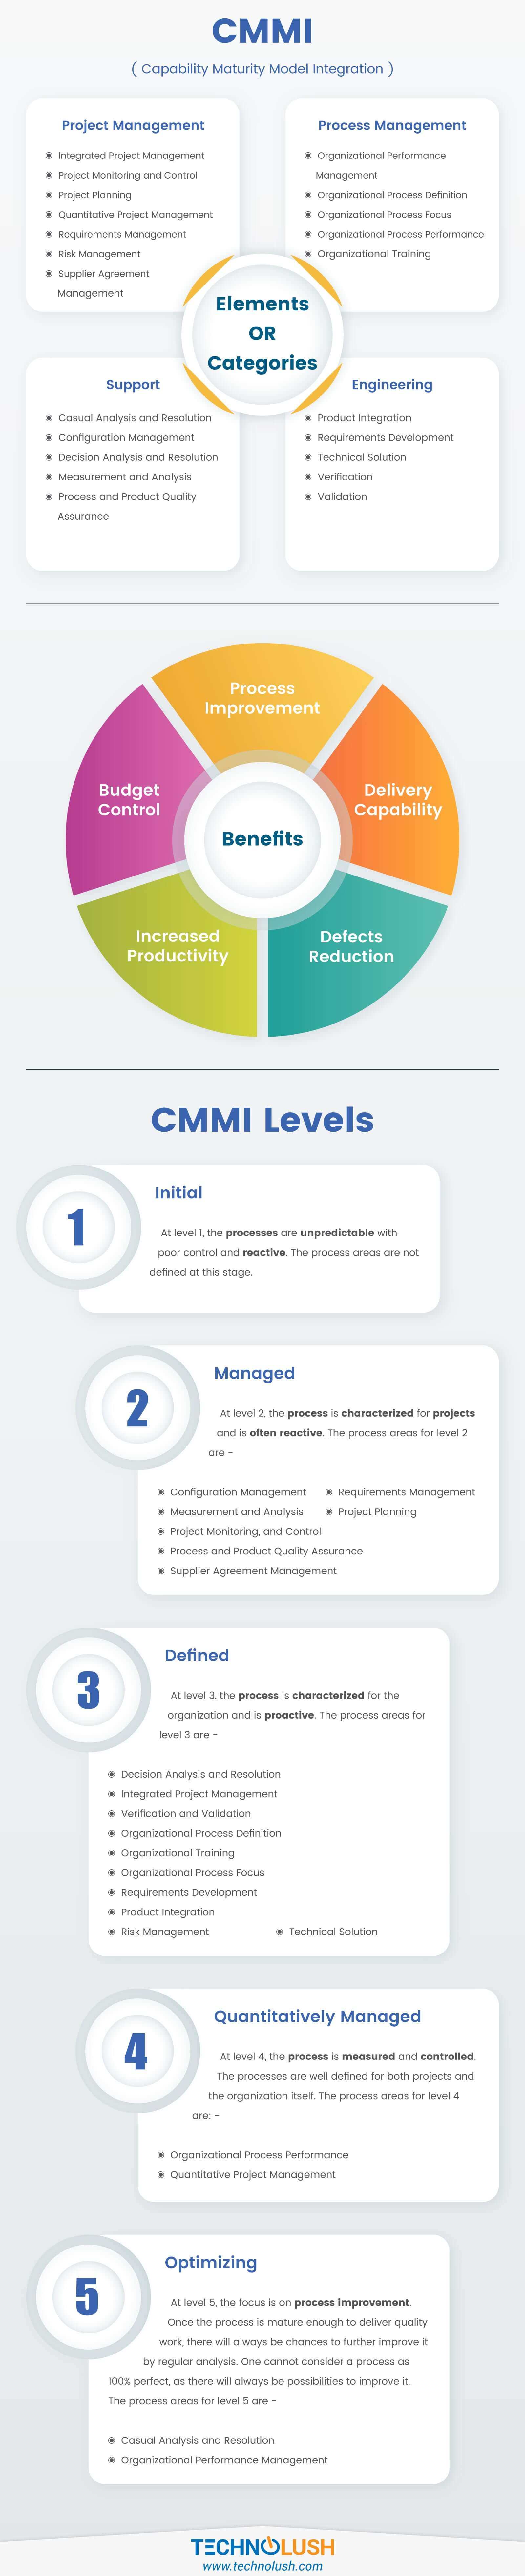 Capability Maturity Model Integration (CMMI) levels